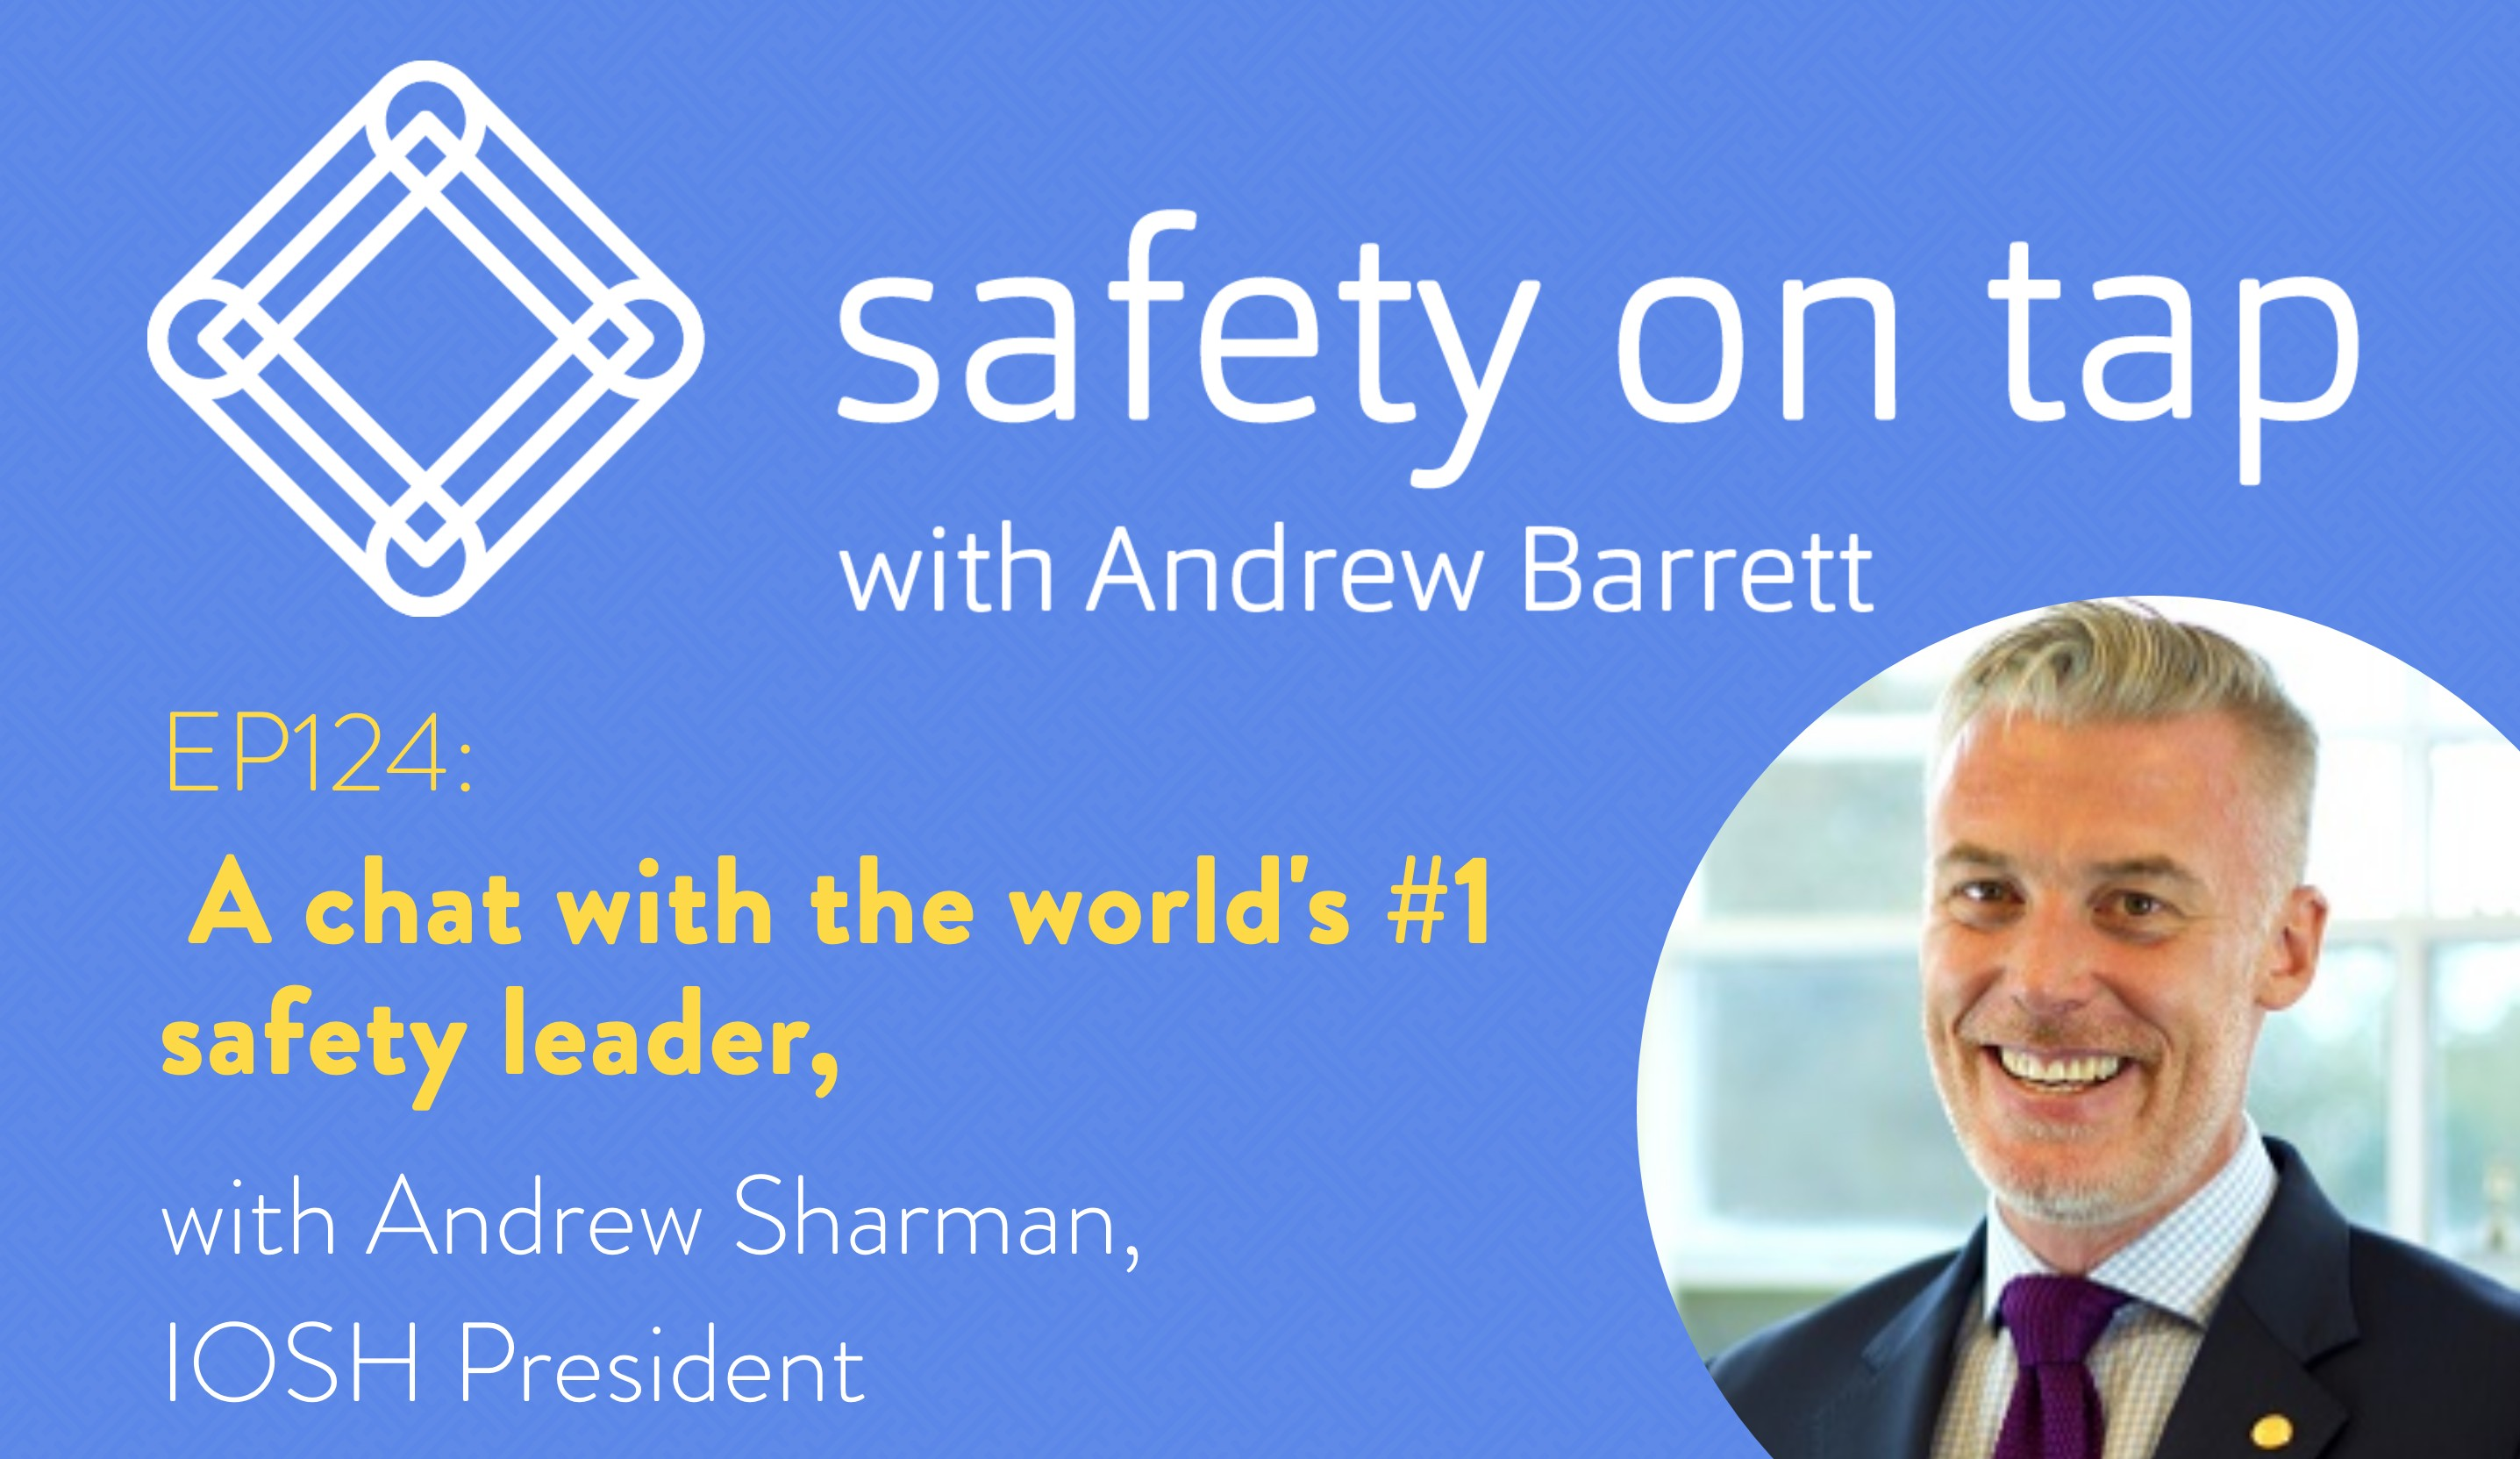 Ep126: A chat with the world's #1 Safety Leader, Andrew Sharman, IOSH President